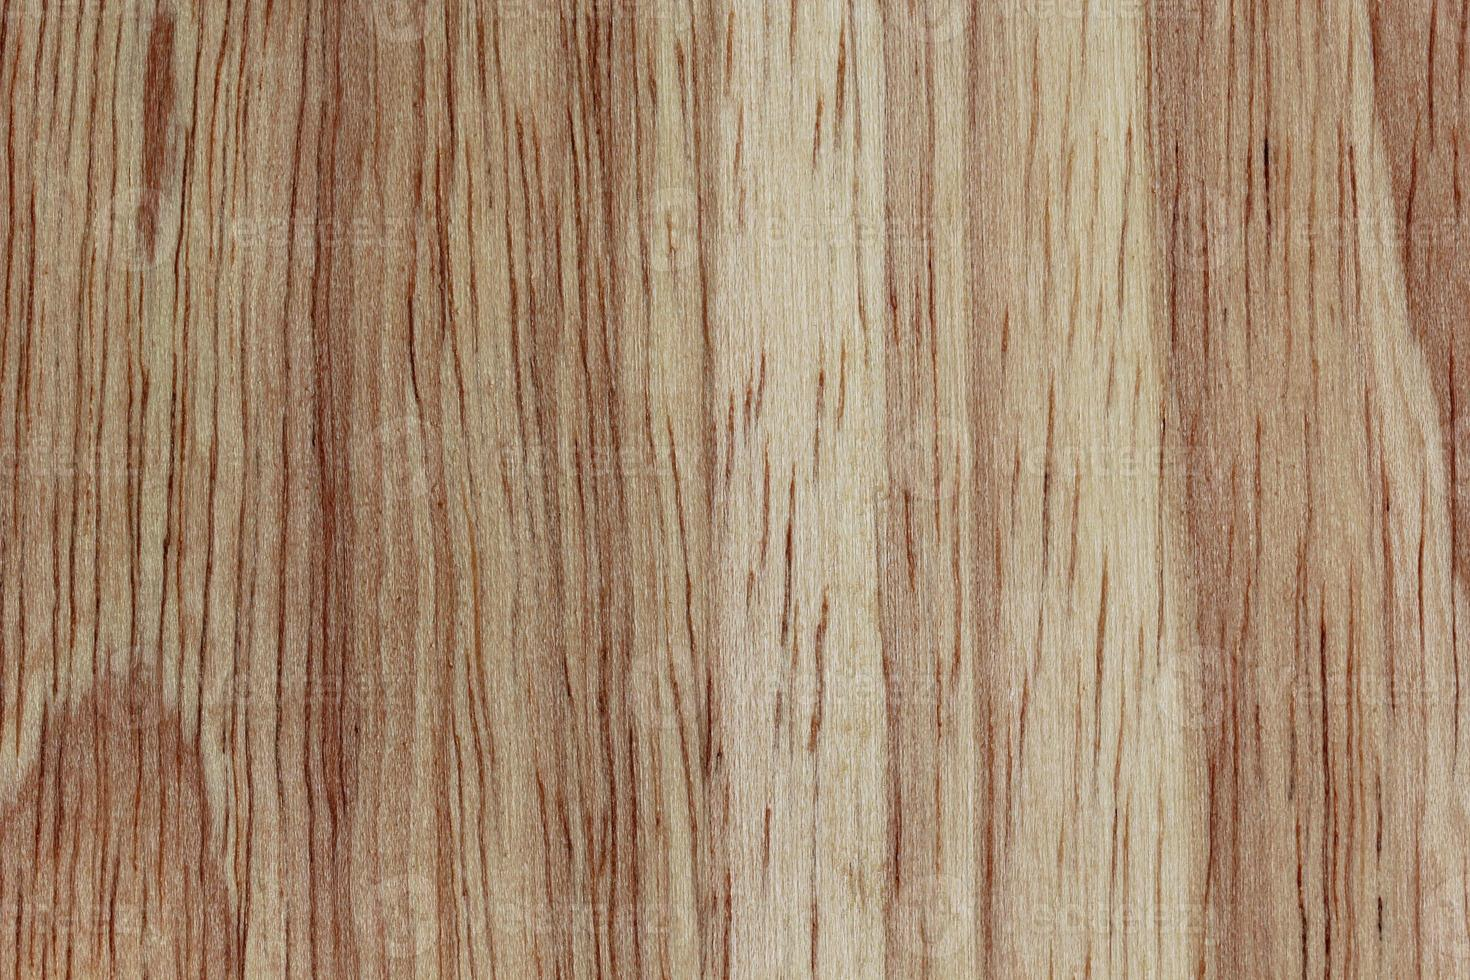 wood texture/wood texture background photo